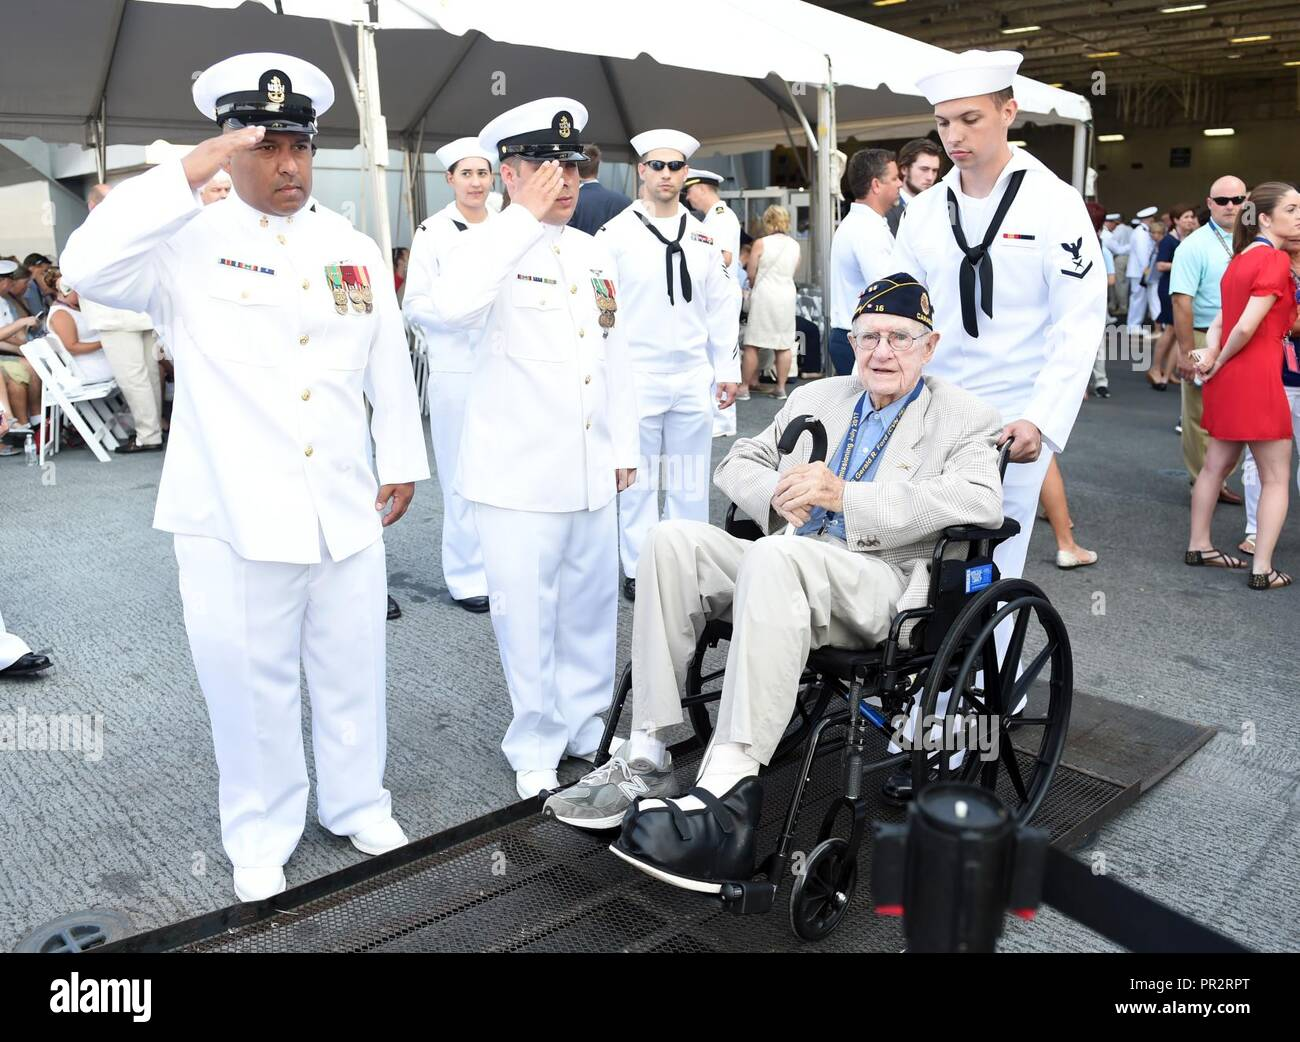 (July 22, 2017) Sailors welcome a veteran aboard to enjoy the aircraft carrierUSS Gerald R. Ford's (CVN 78) commissioning ceremony at Naval Station Norfolk, Va. Ford is the lead ship of the Ford-class aircraft carriers, and the first new U.S. aircraft carrier design in 40 years. - Stock Image